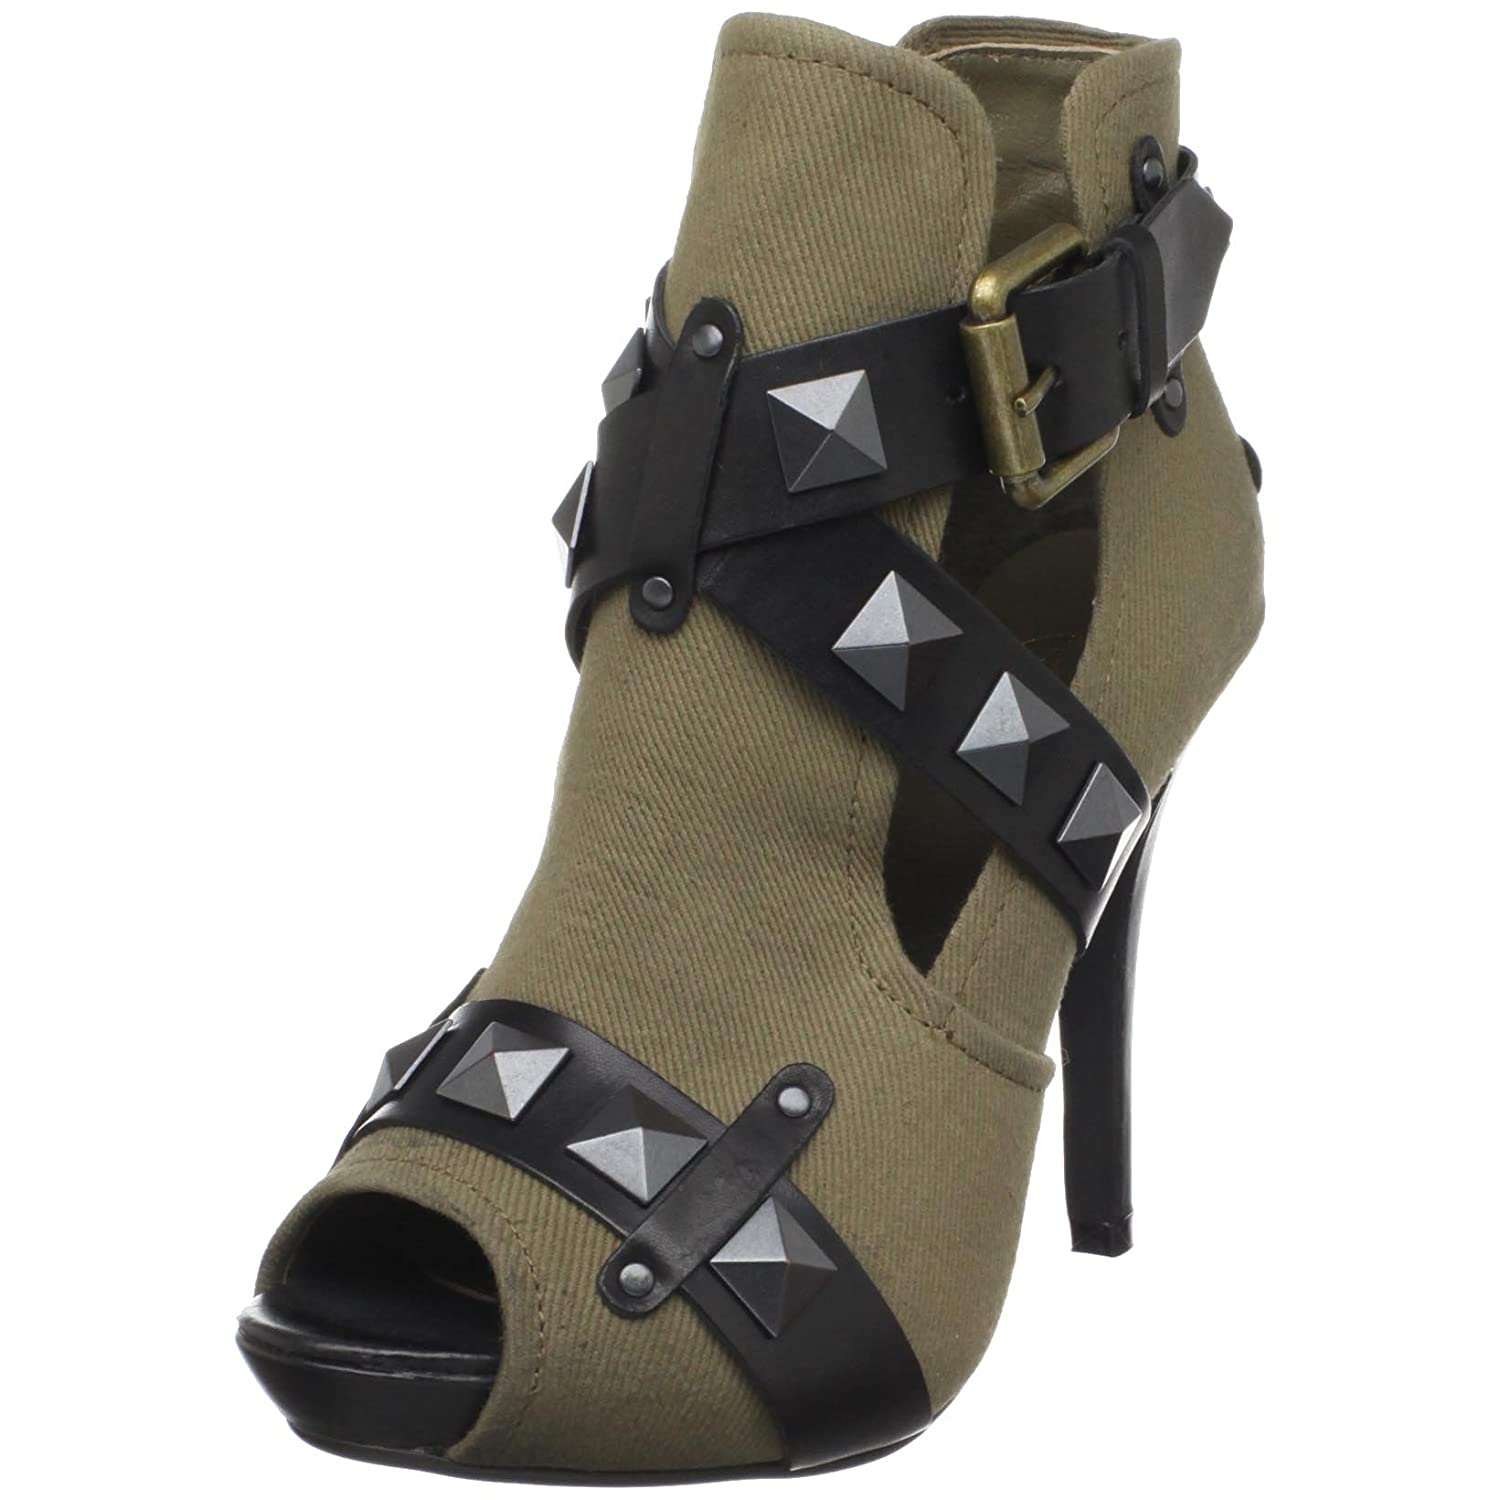 Ash - Giorgia Strappy Open-Toe Boot from endless.com